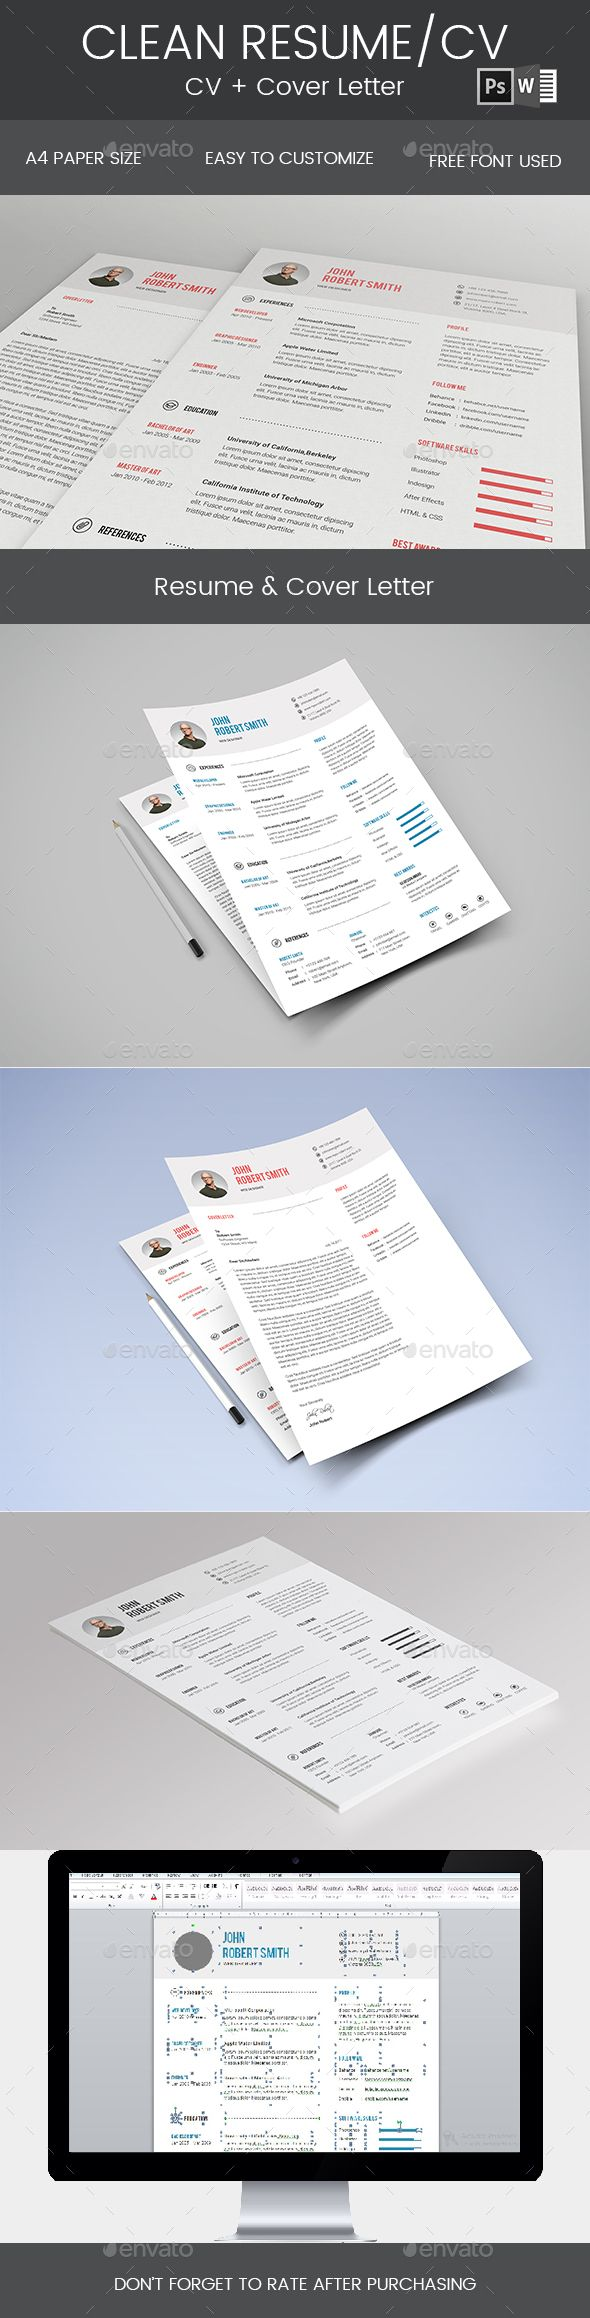 How To Make A Cover Letter For A Resume Clean Resume & Cover Letter  Resume Cover Letters Resume Cover .